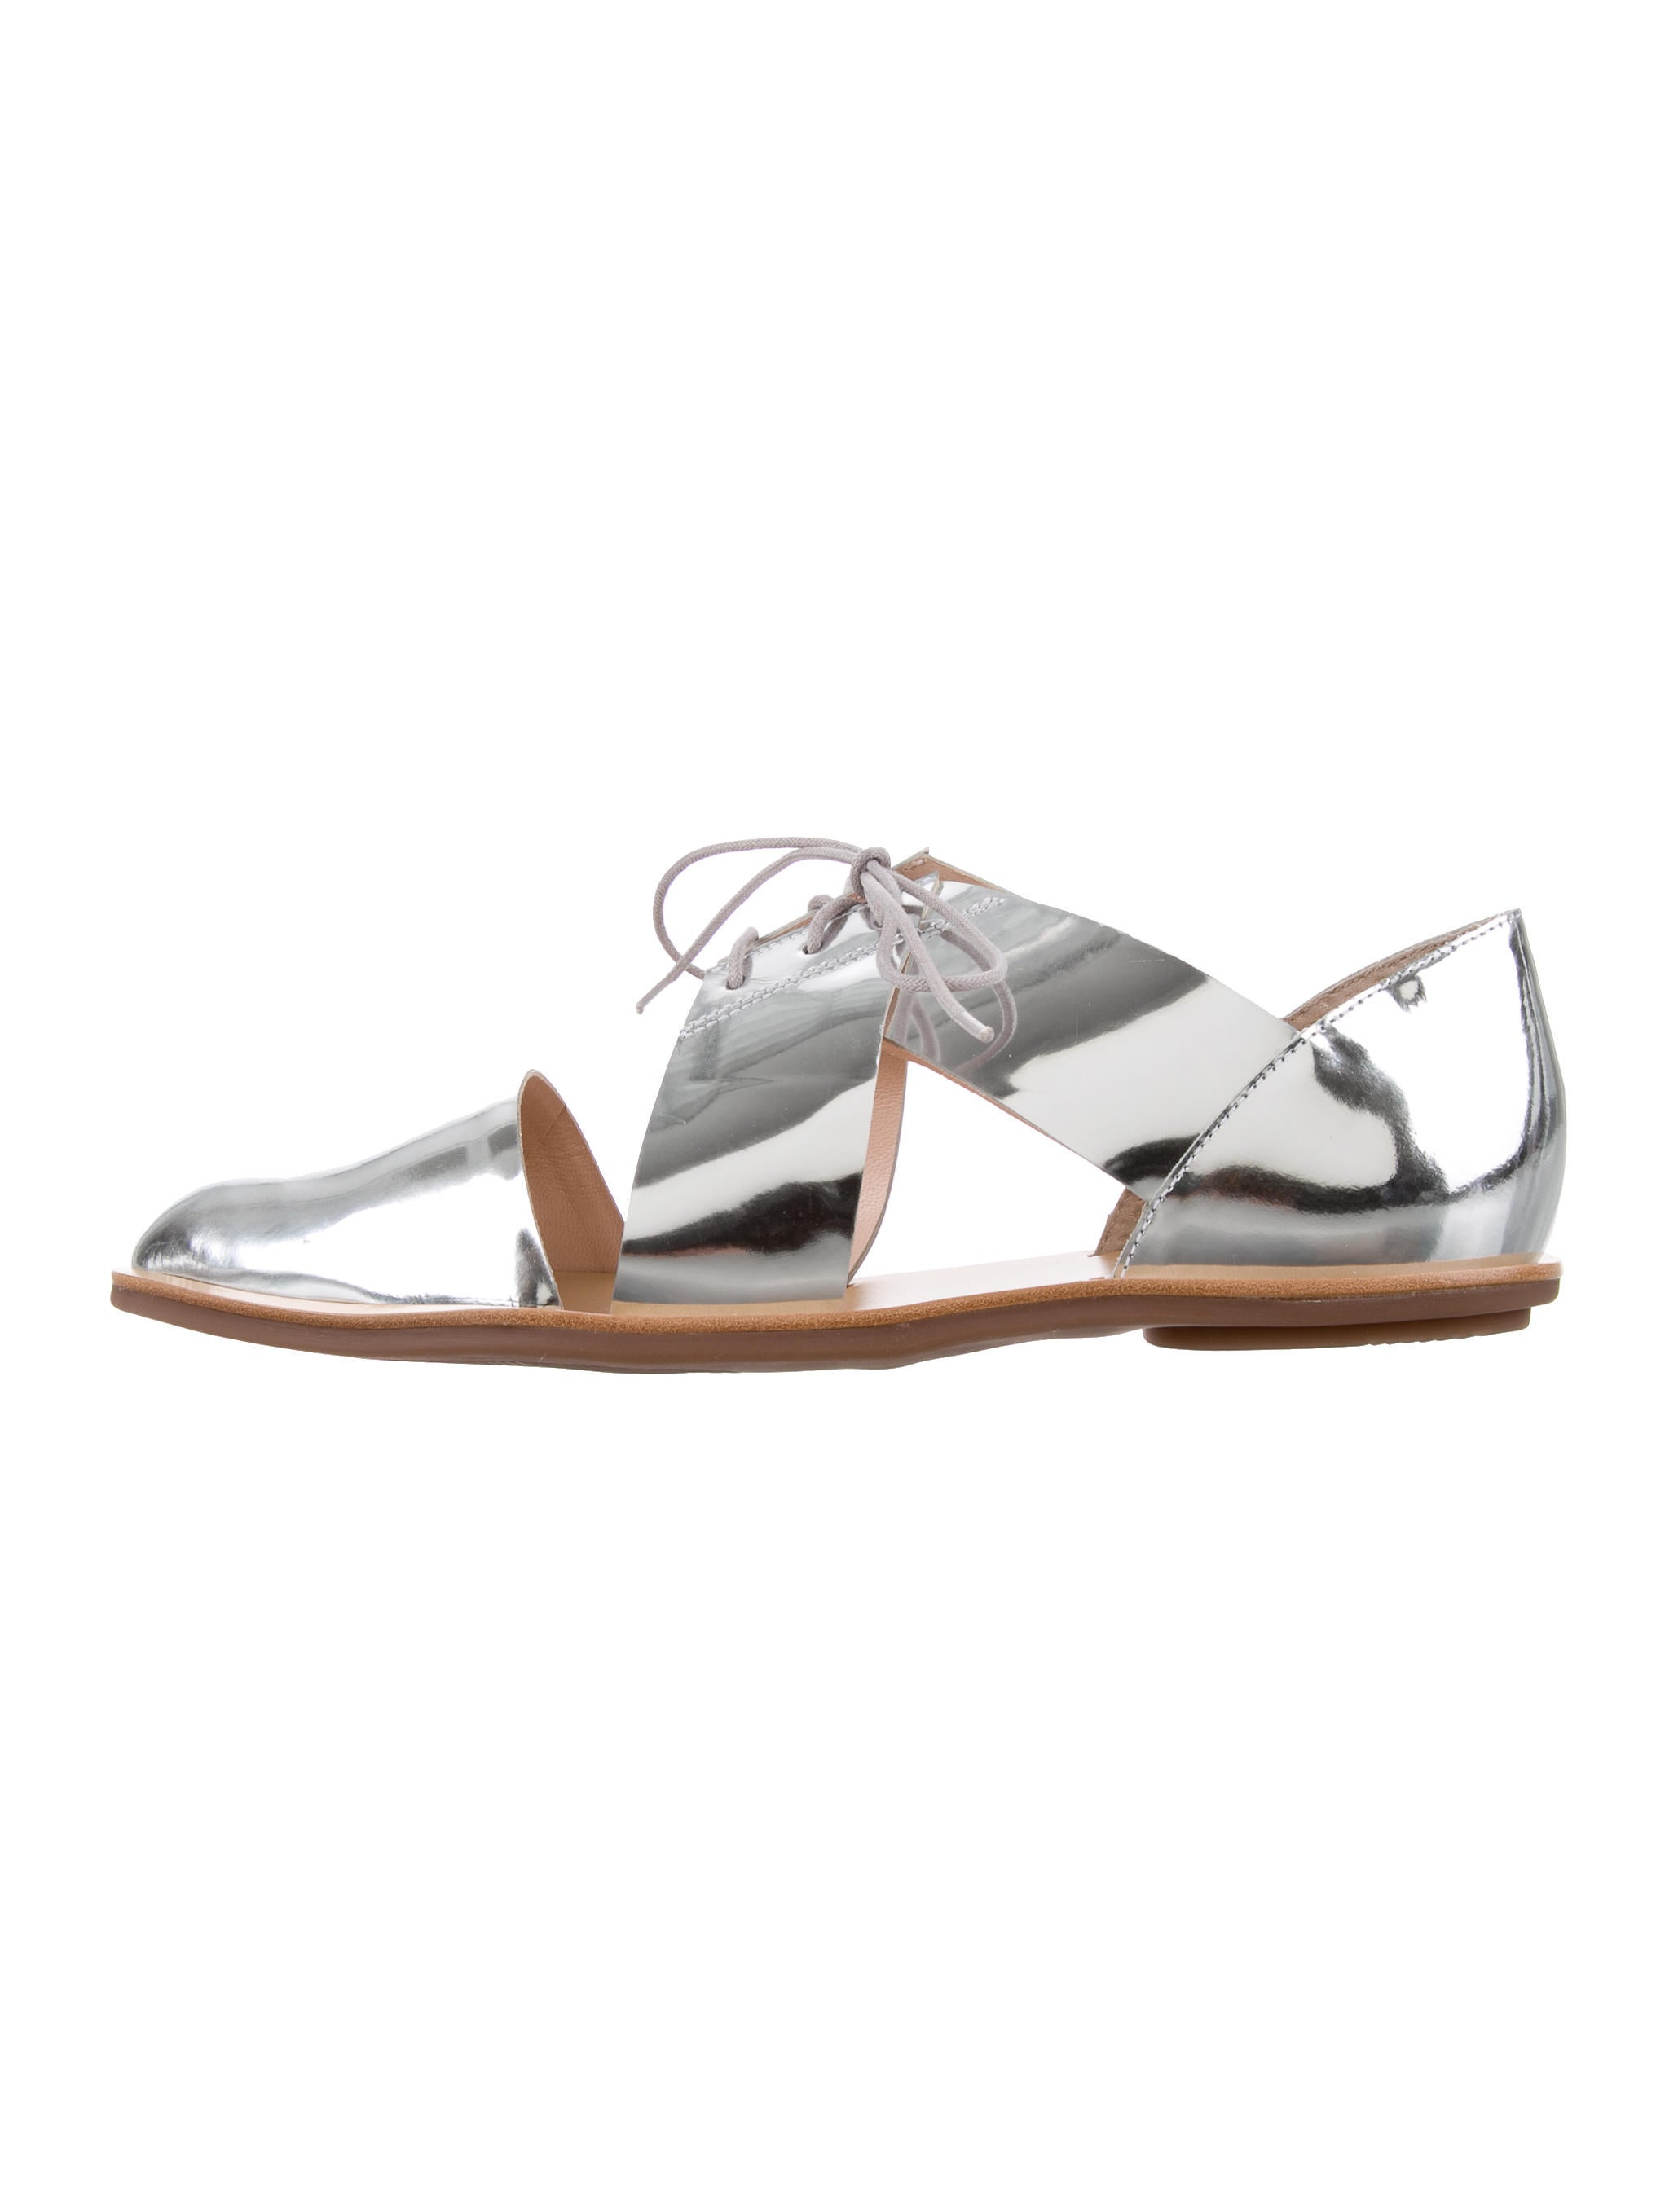 Loeffler Randall Willa Metallic Oxfords w/ Tags brand new unisex outlet locations cheap online outlet under $60 classic cheap online professional online N4HvDW